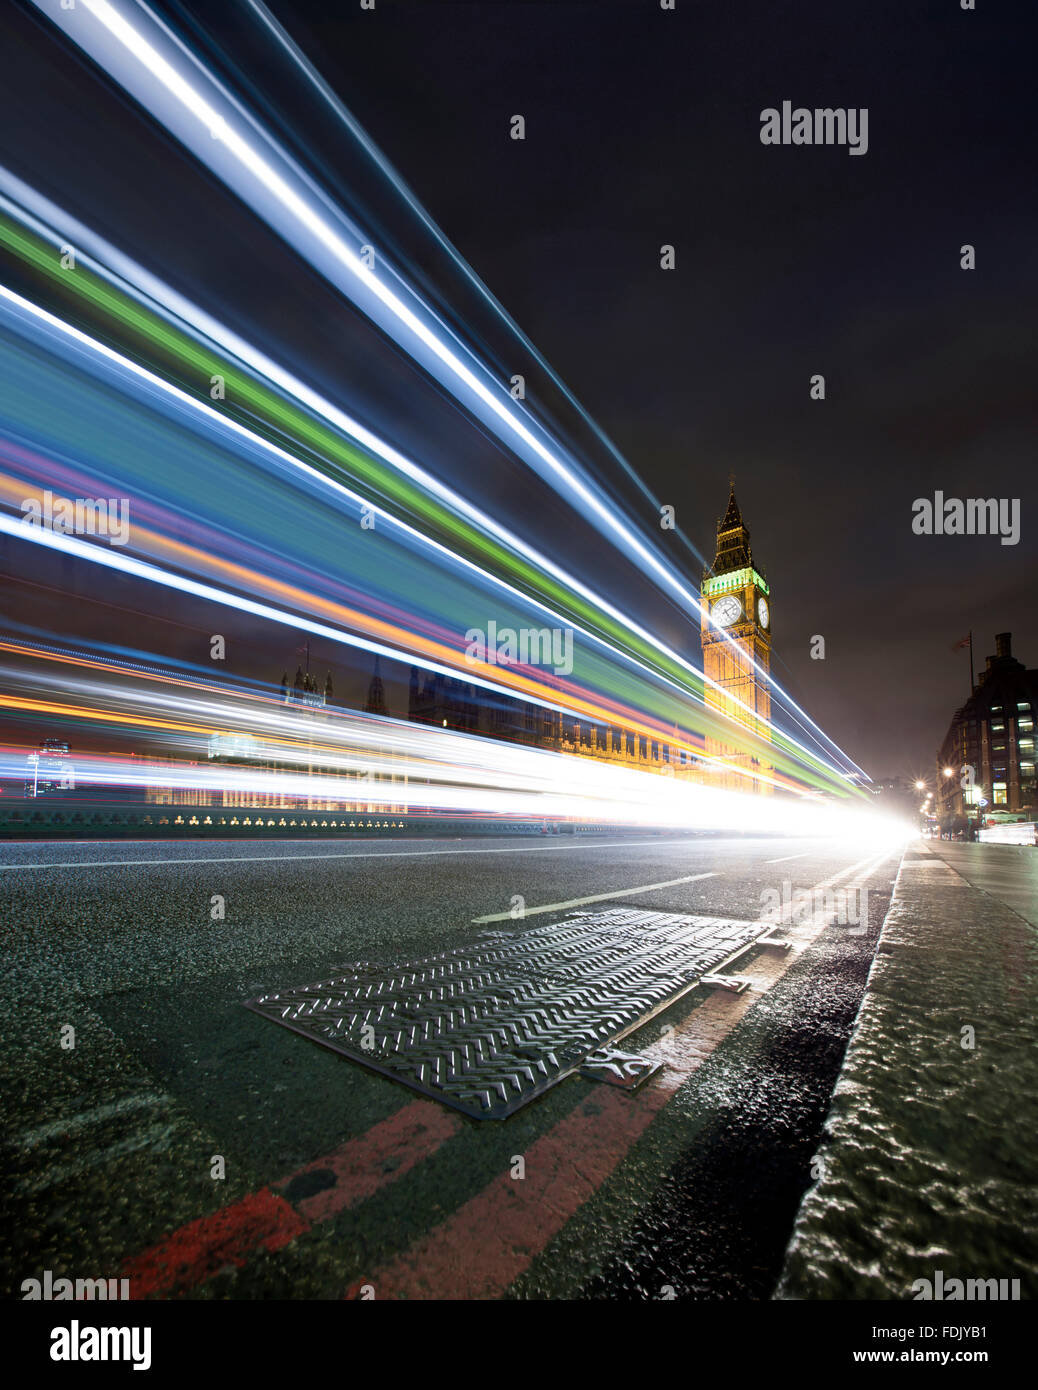 Light trails on Westminster Bridge at night, London, England, United Kingdom Stock Photo